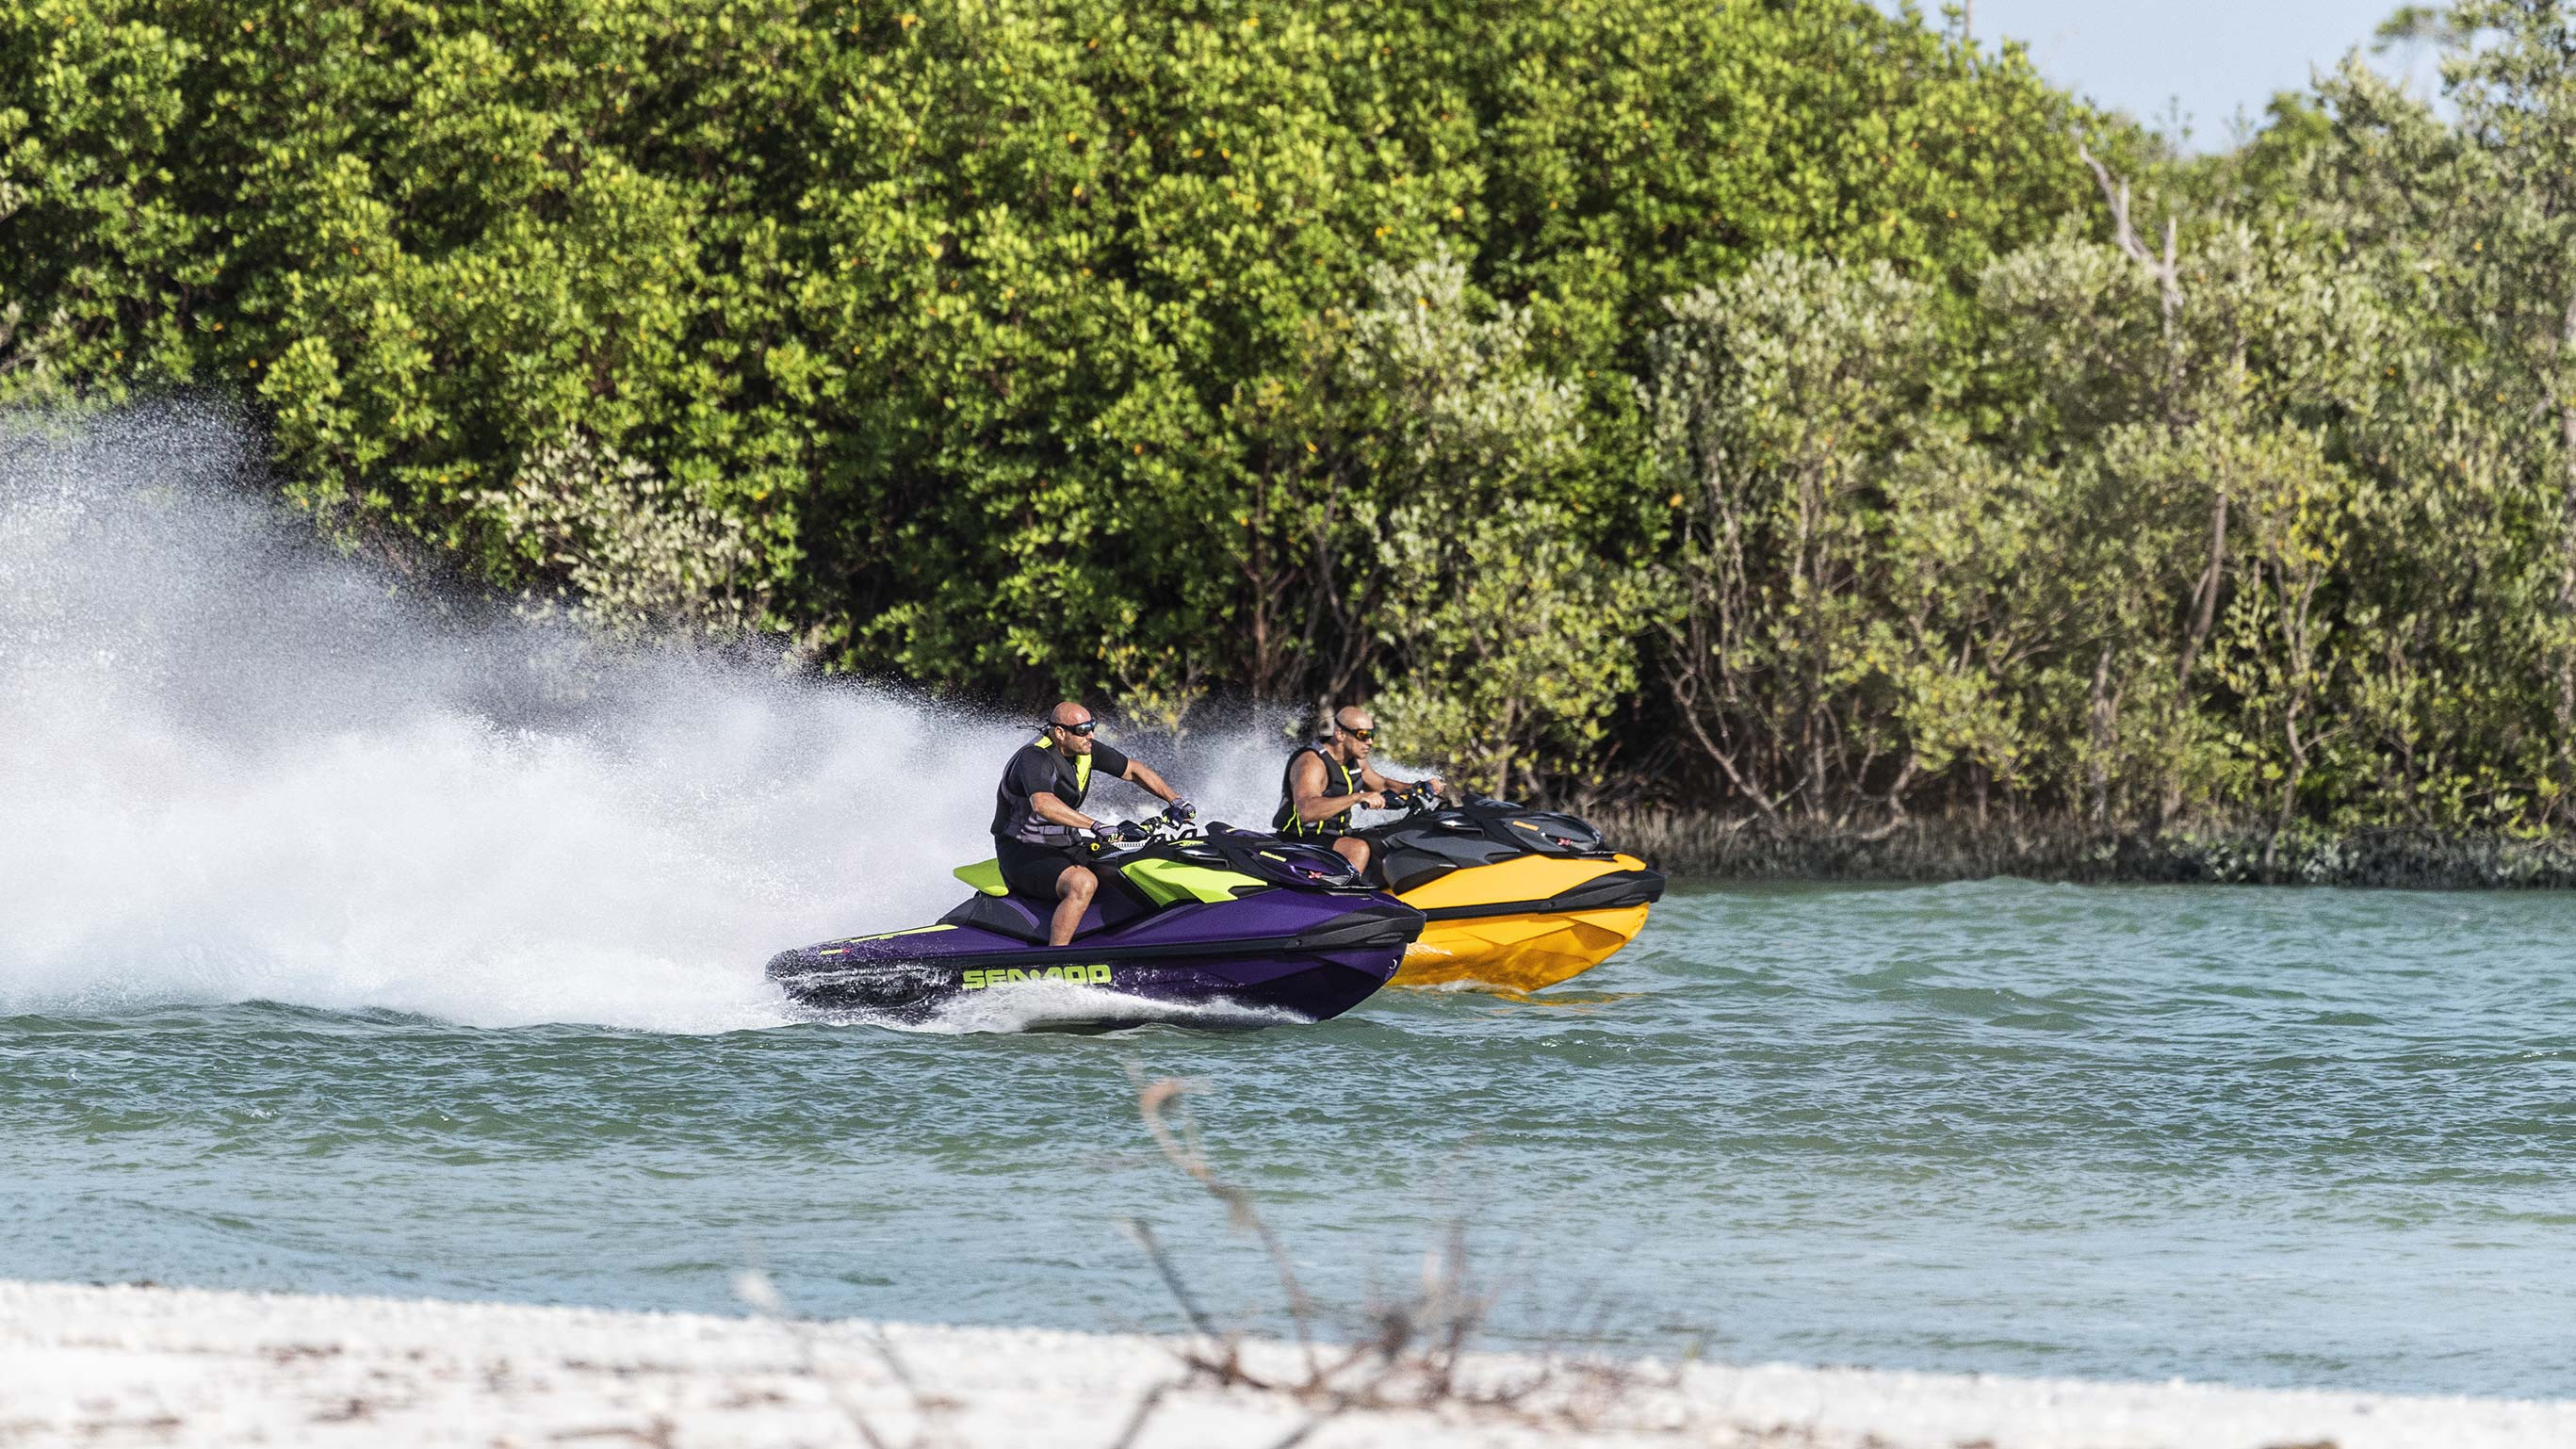 Two men riding Sea-Doo watercrafts very fast